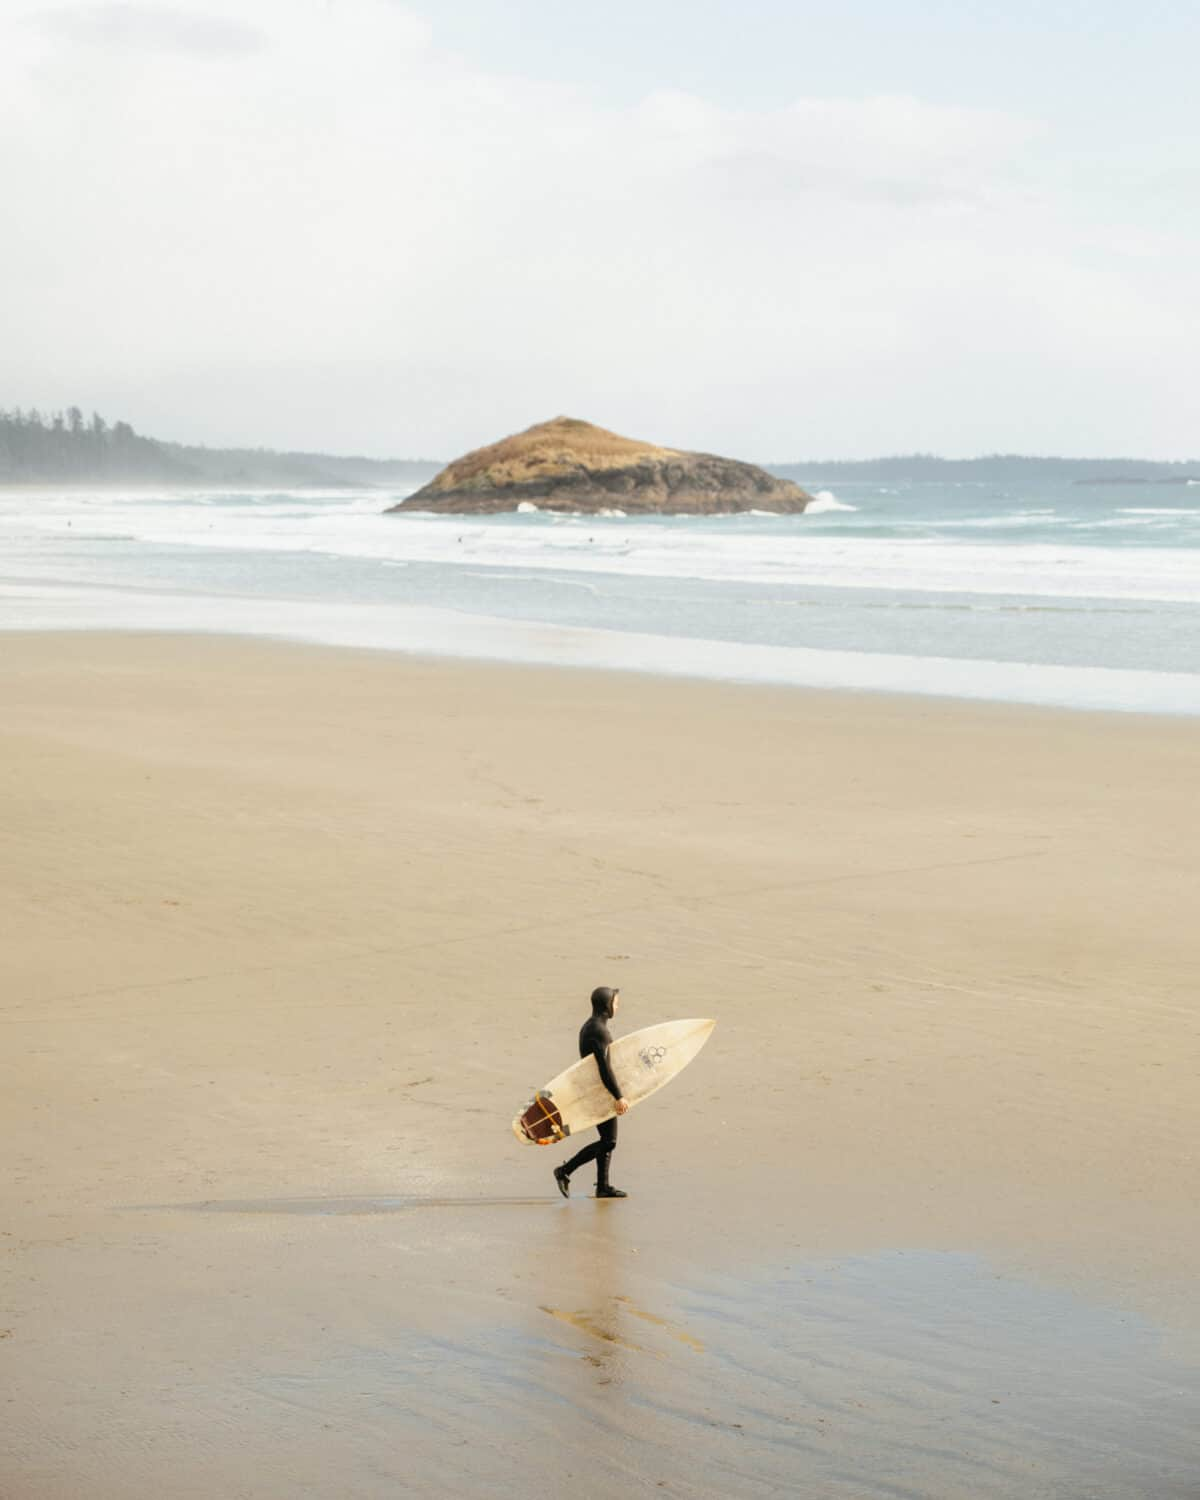 Surfer on Long Beach in Tofino, BC - Vancouver Island - TheMandagies.com